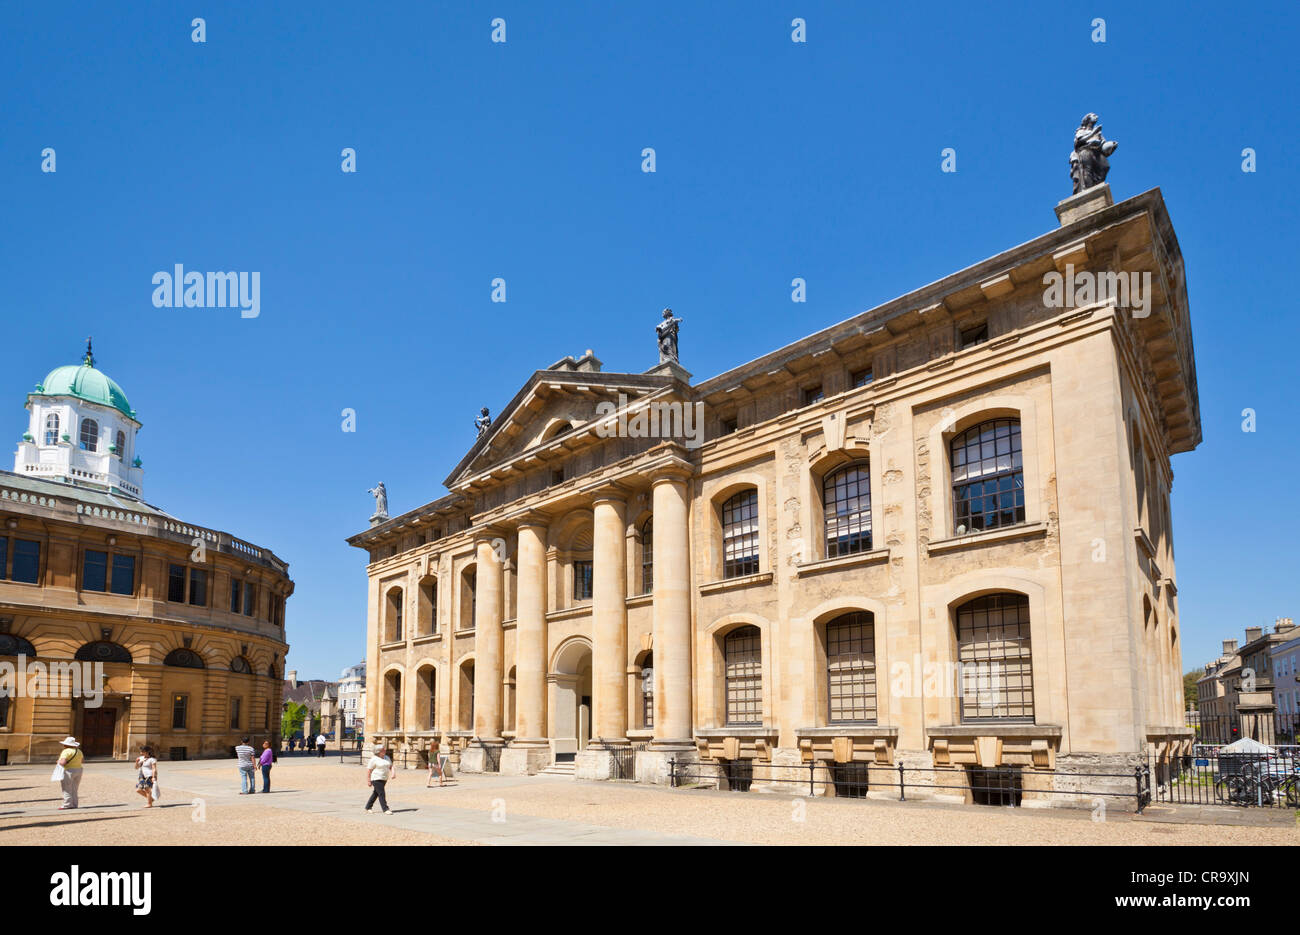 New Bodleian Library Oxford Oxfordshire England UK GB EU Europe - Stock Image